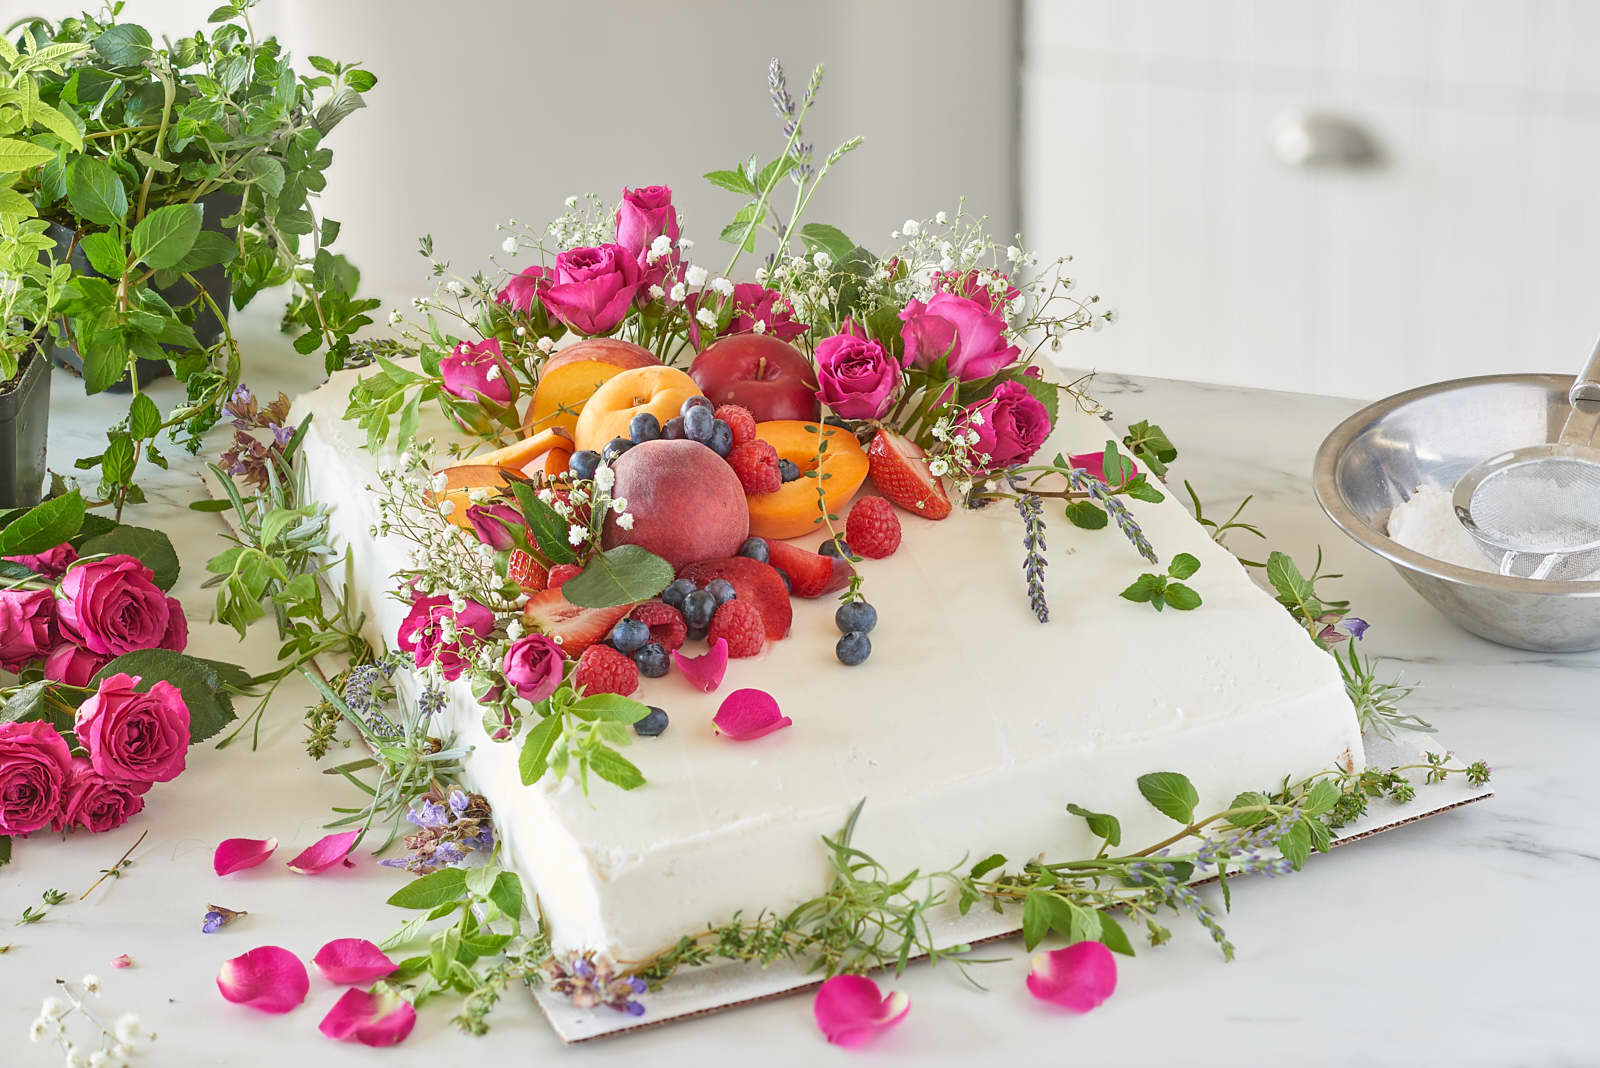 3 Ways To Turn A Grocery Store Cake Into A Wedding Cake